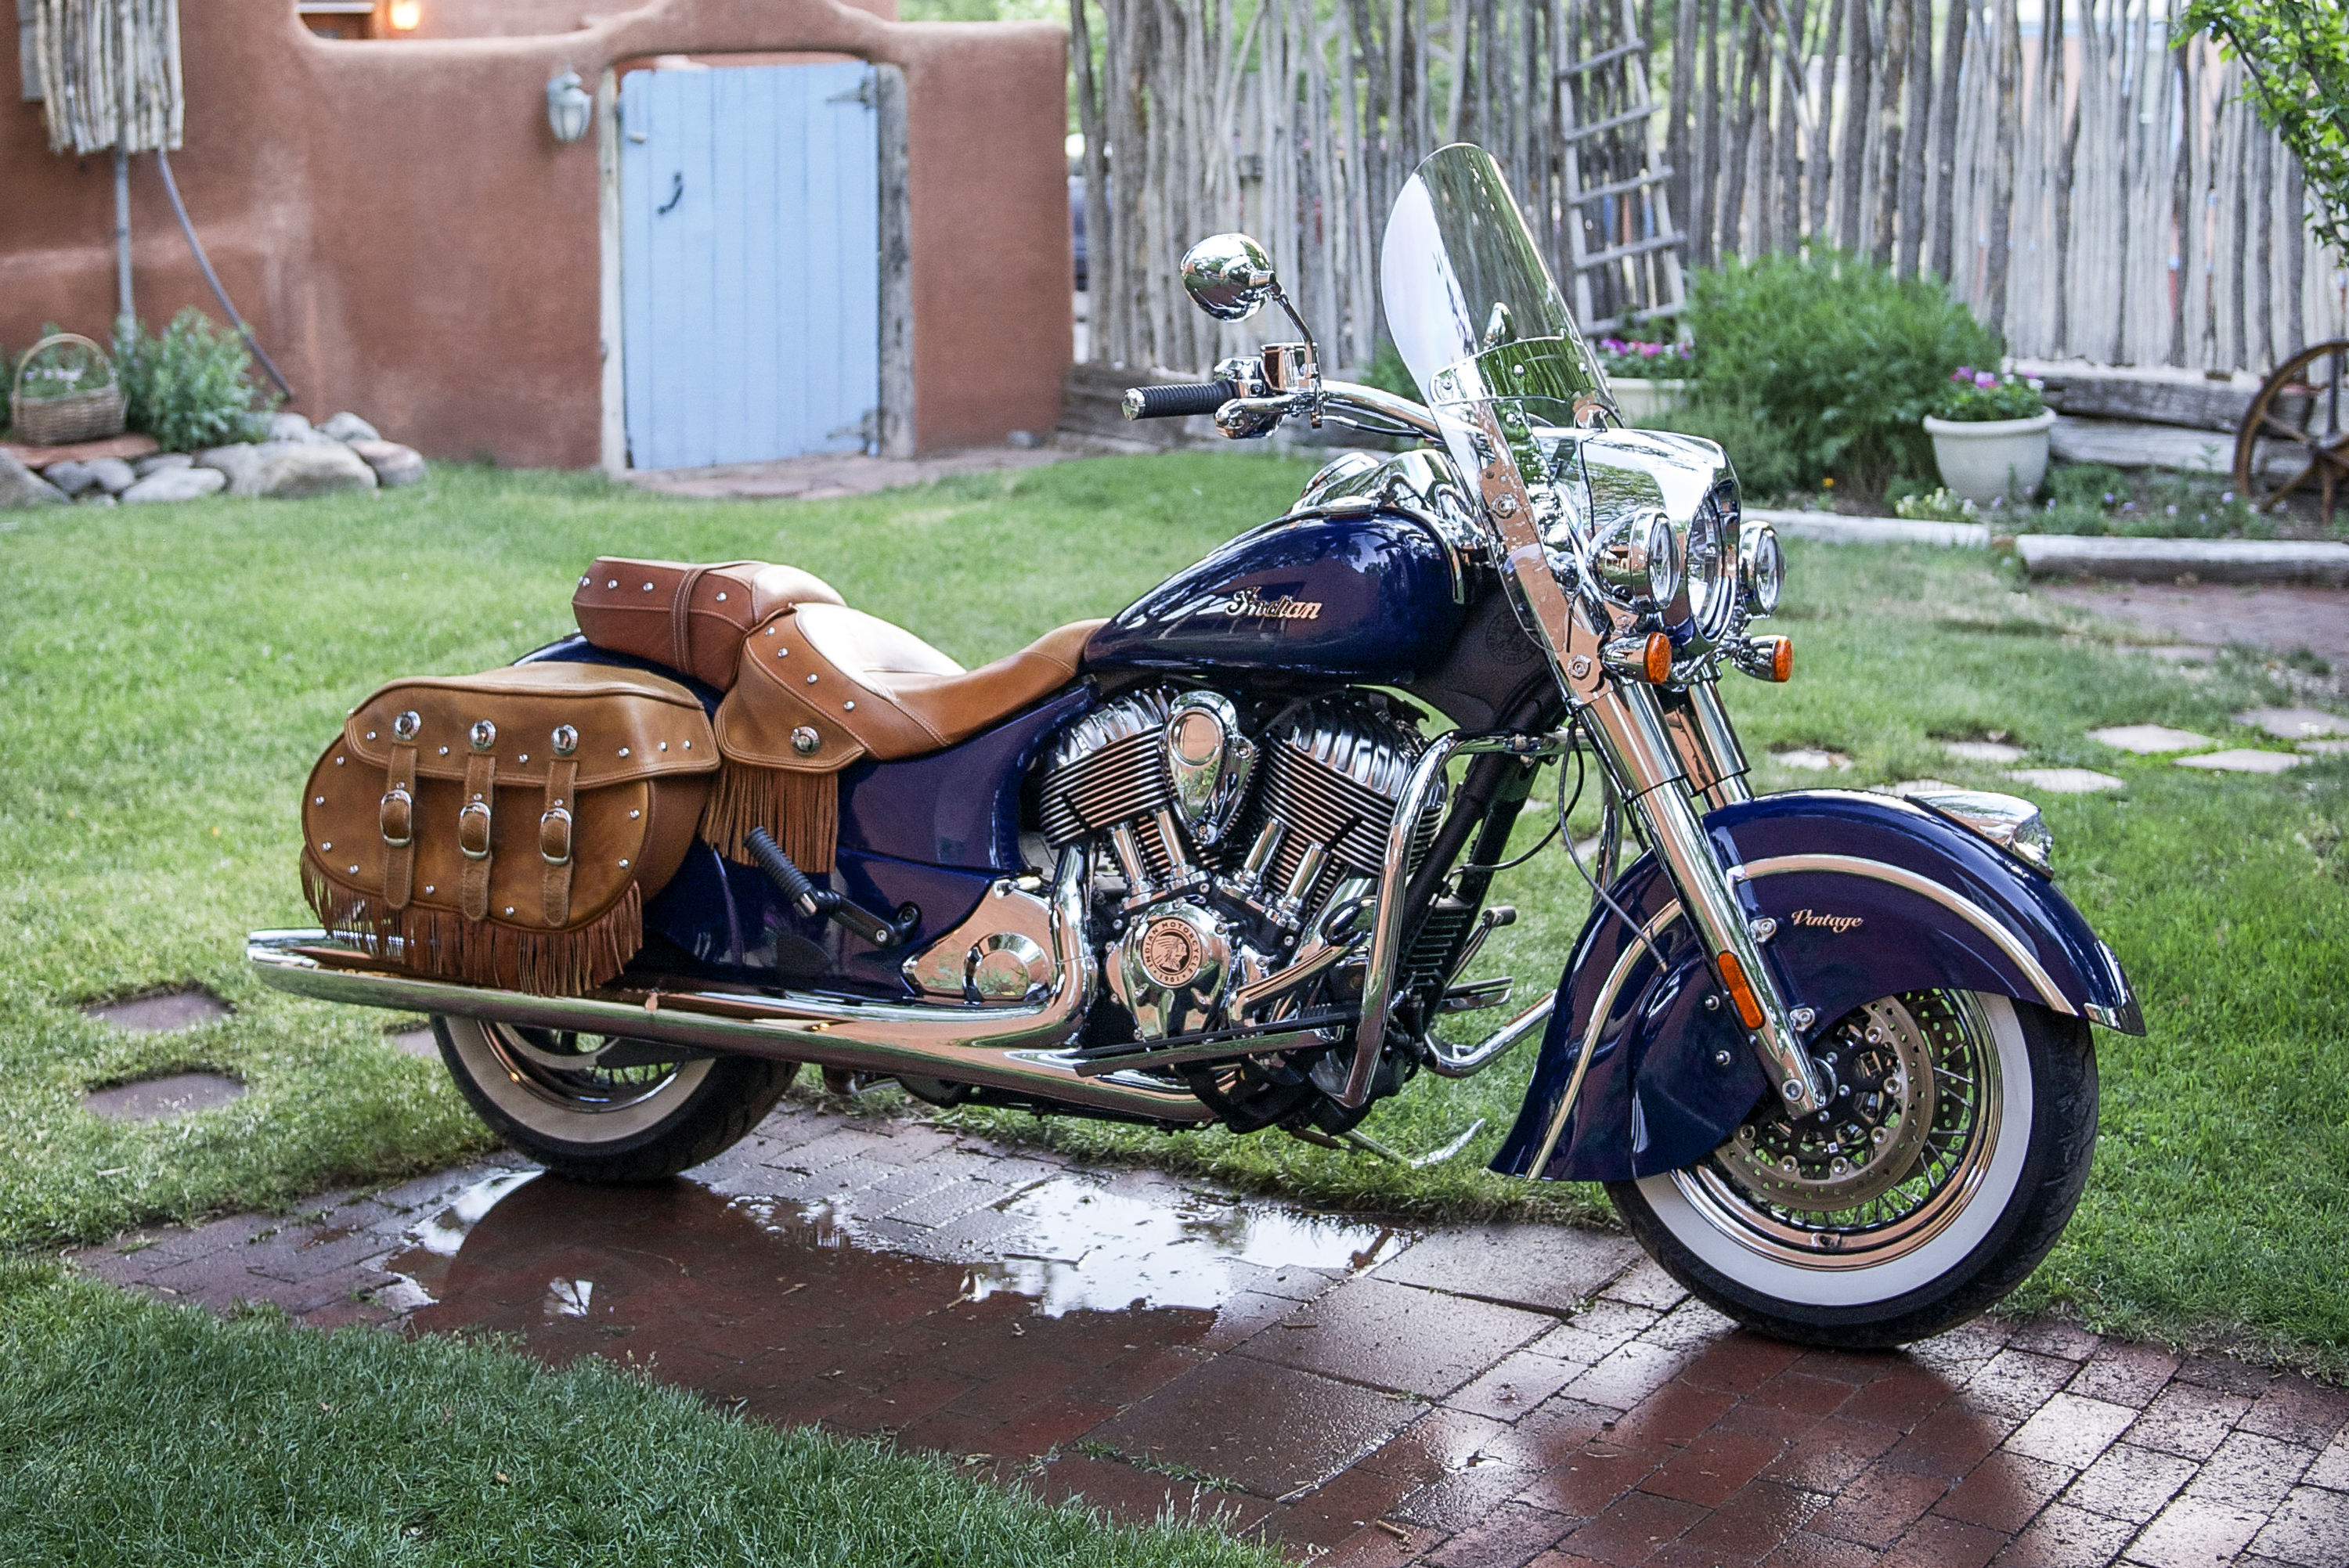 The all-new, yet iconic 2014 Indian Chief Vintage soft bagger (starting MSRP: $20,999) (Photo: Indian Motorcycle)